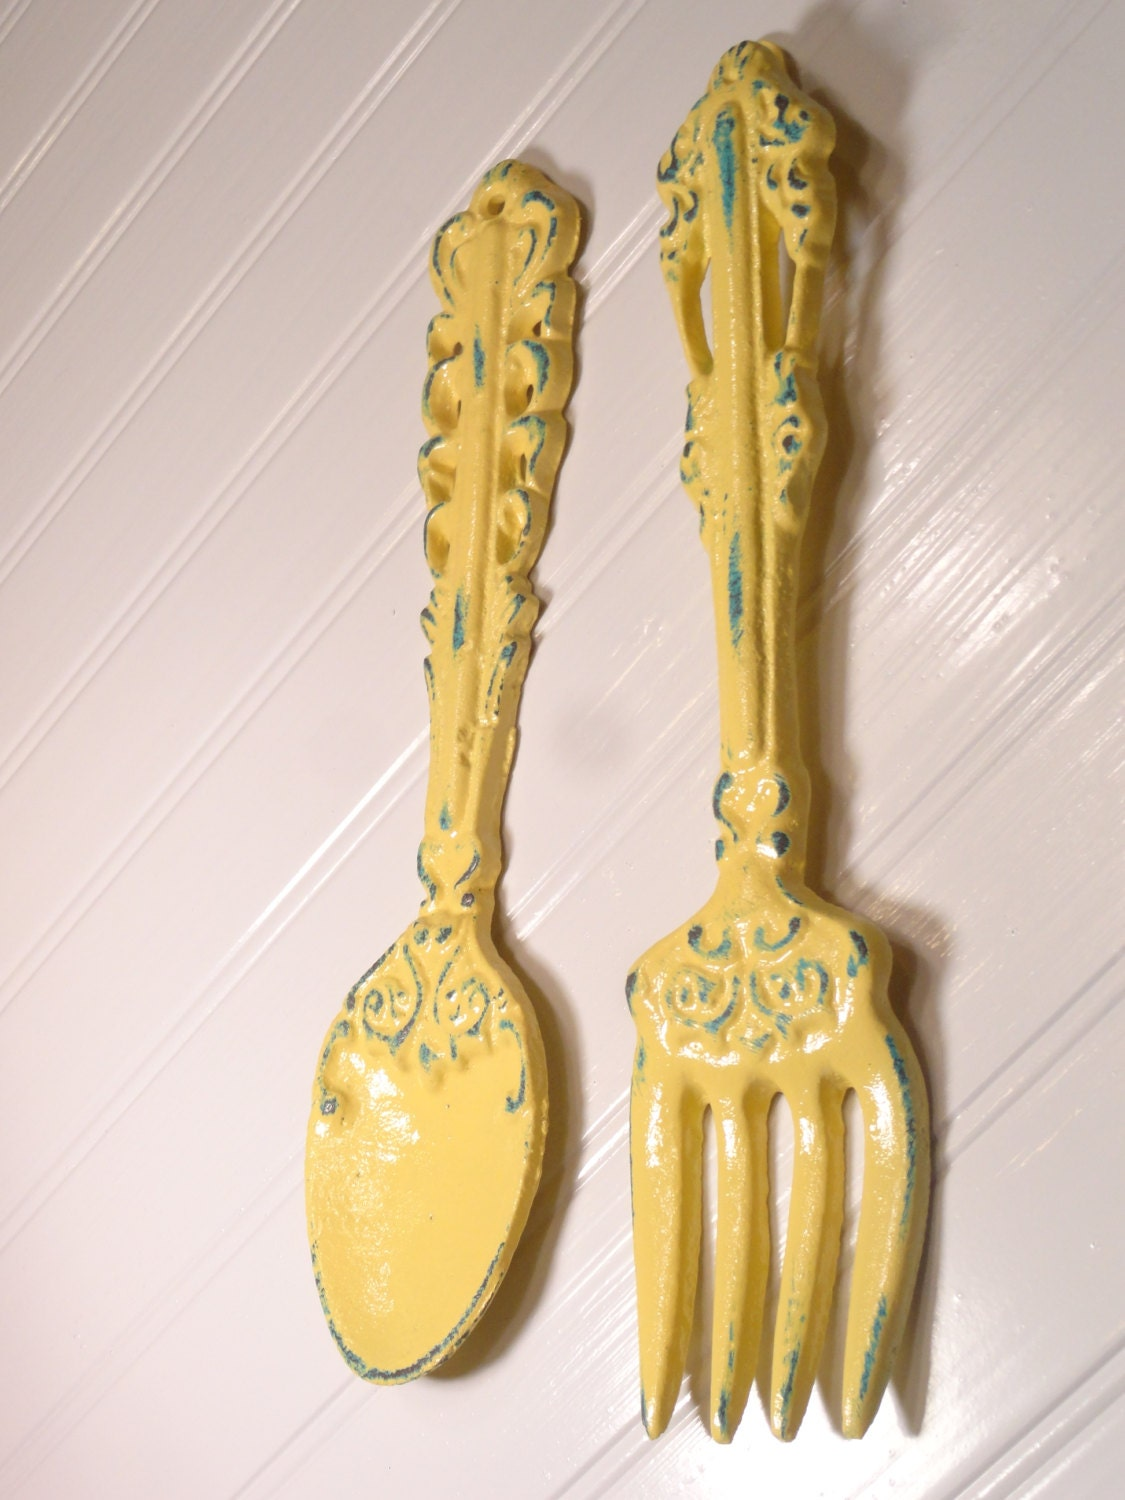 Large Fork And Spoon Set Wall Decor Metal Shabby Chic